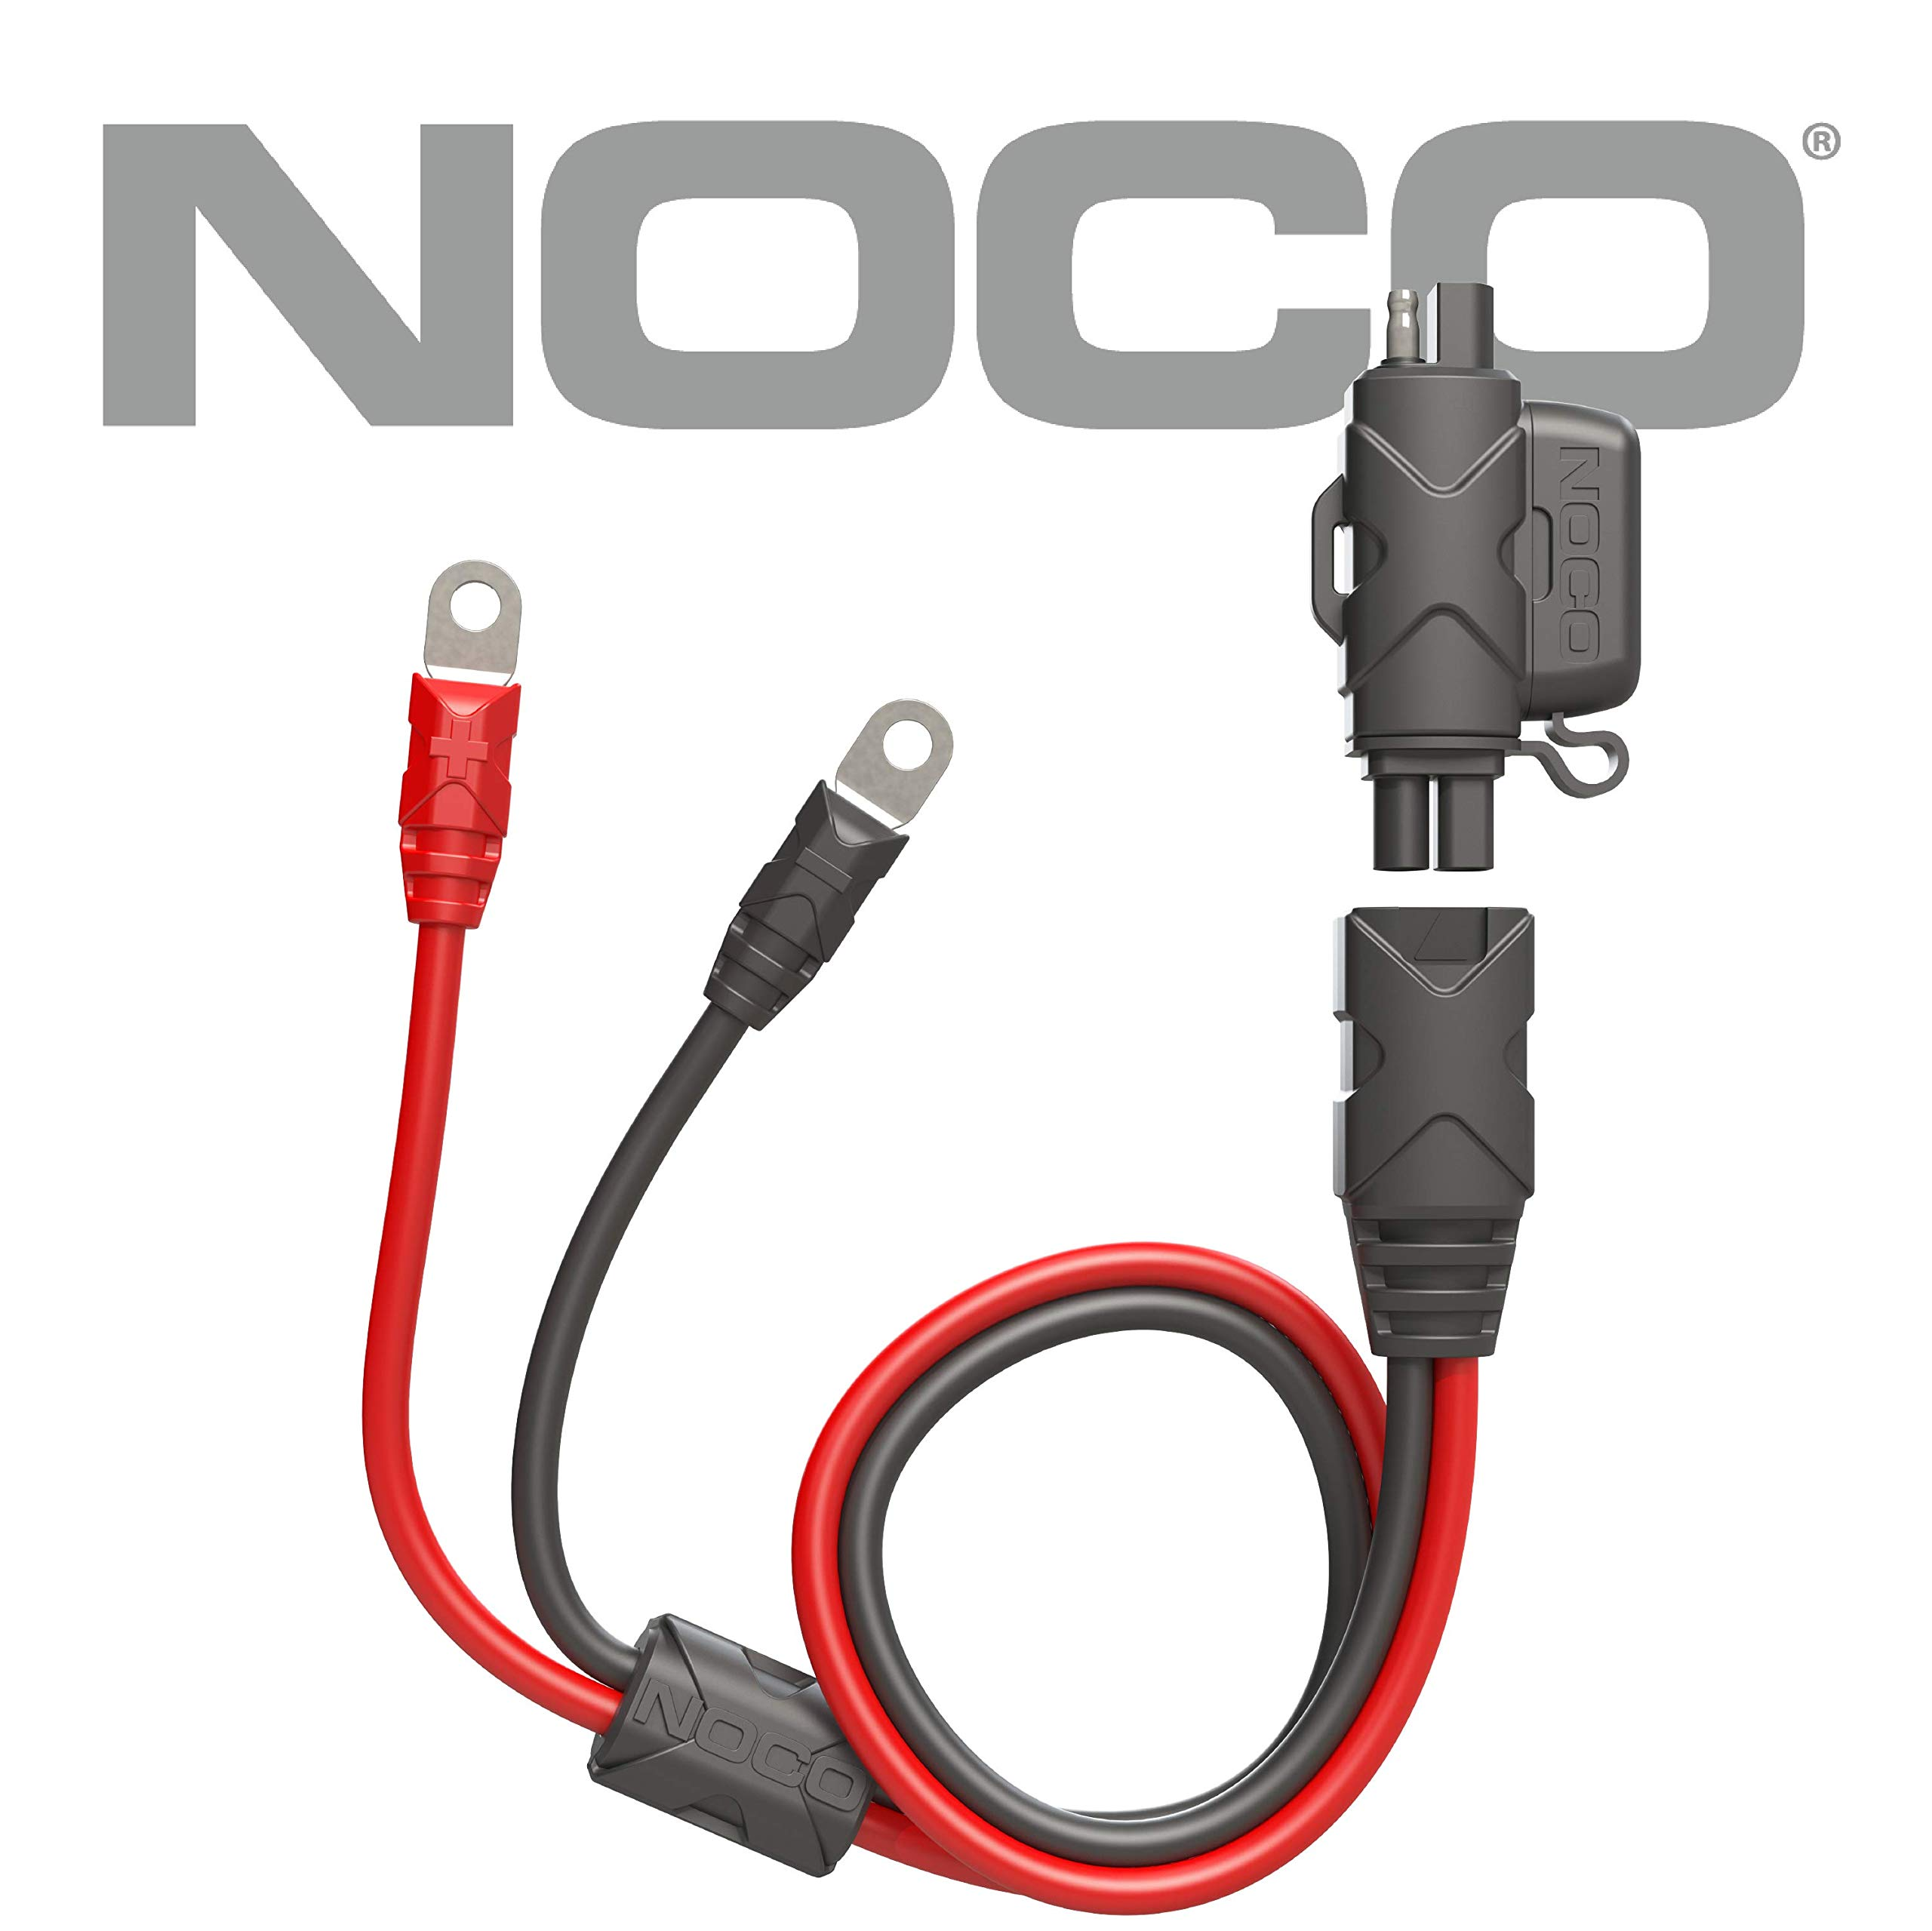 NOCO Boost GBC009 Eyelet Accessory Cable Adapter to Allow Charging with SAE Battery Chargers by NOCO